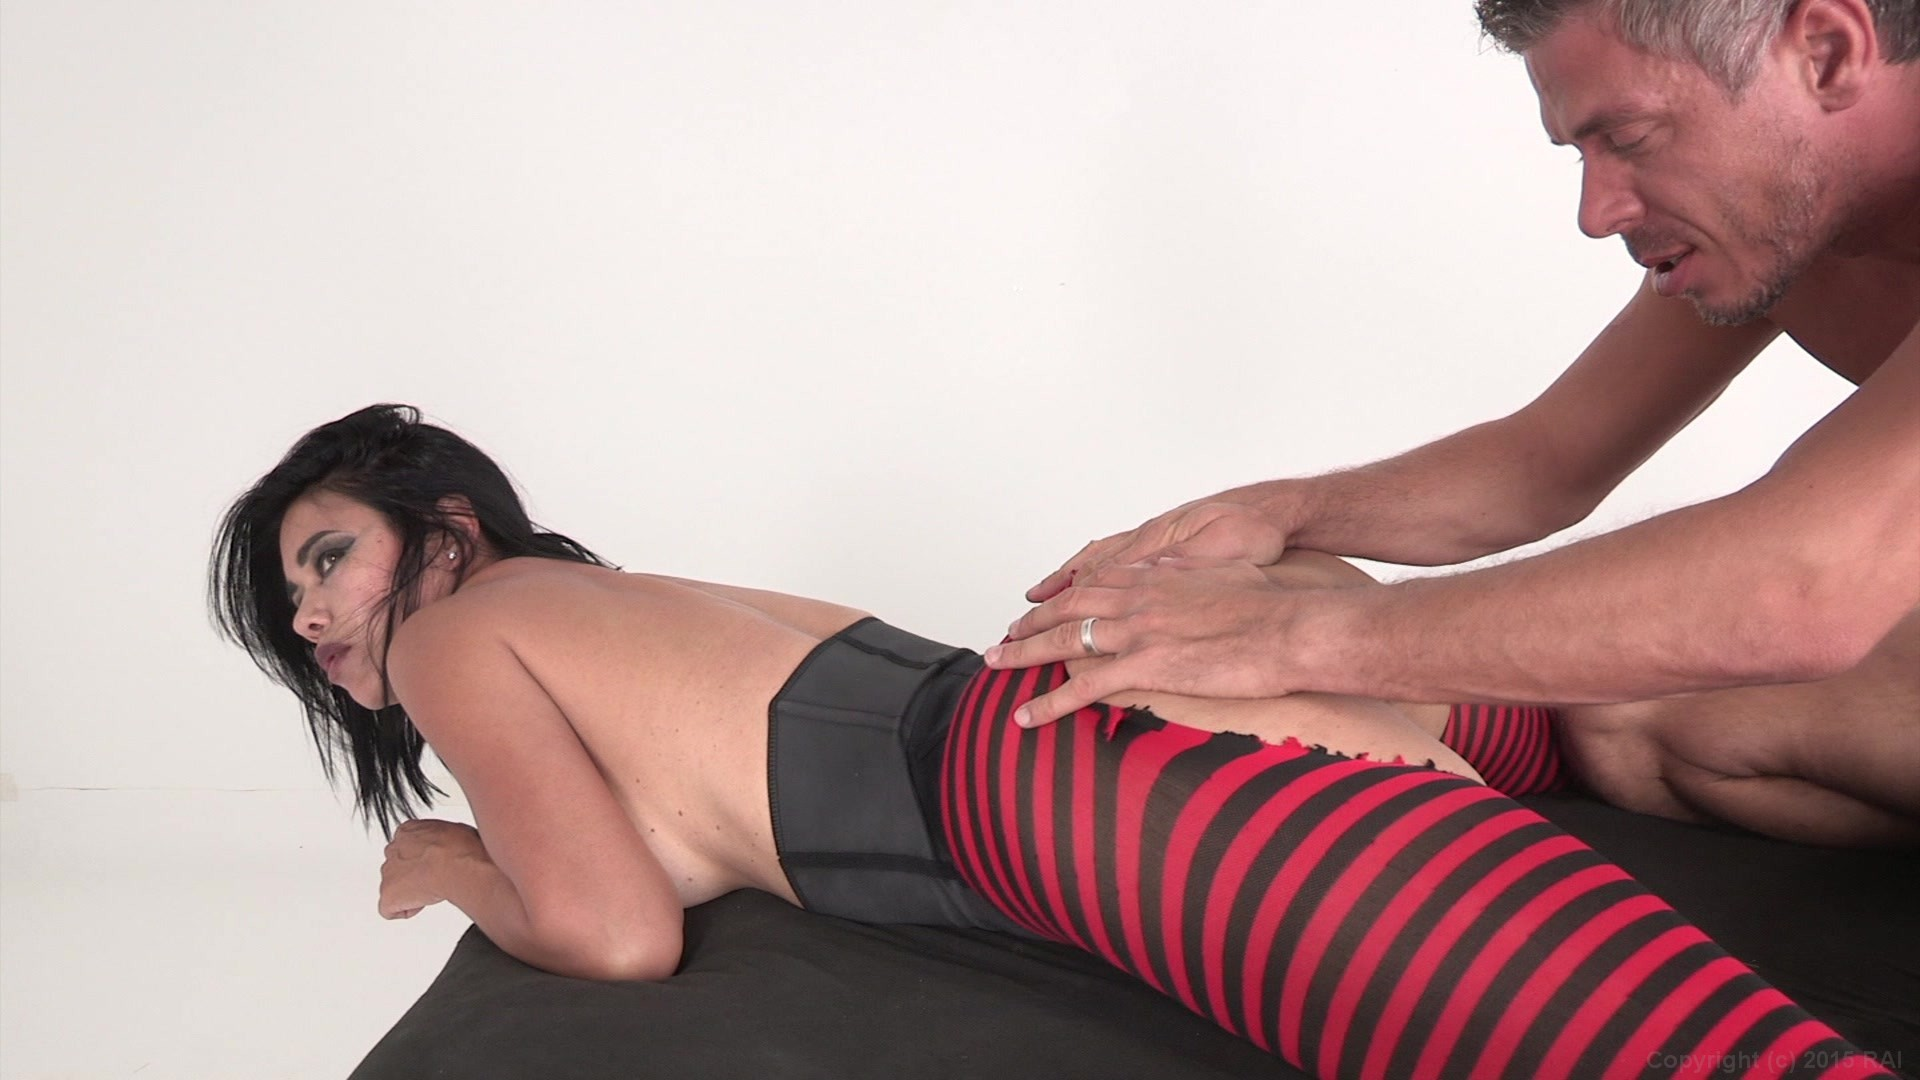 Scene with Mick Blue and Dana Vespoli - image 17 out of 20